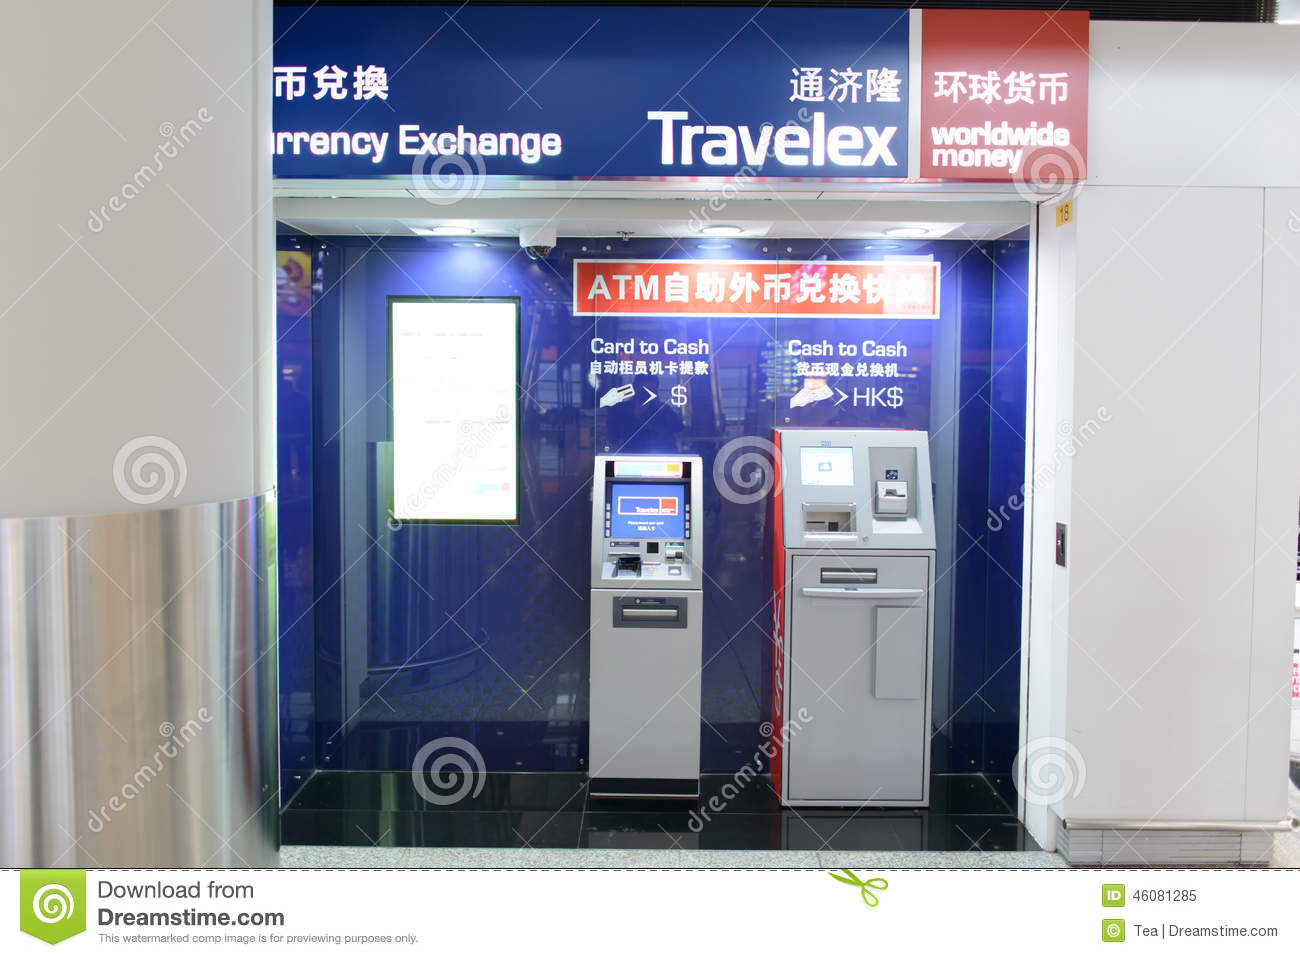 Travelex atm in airport editorial image  Image of airline